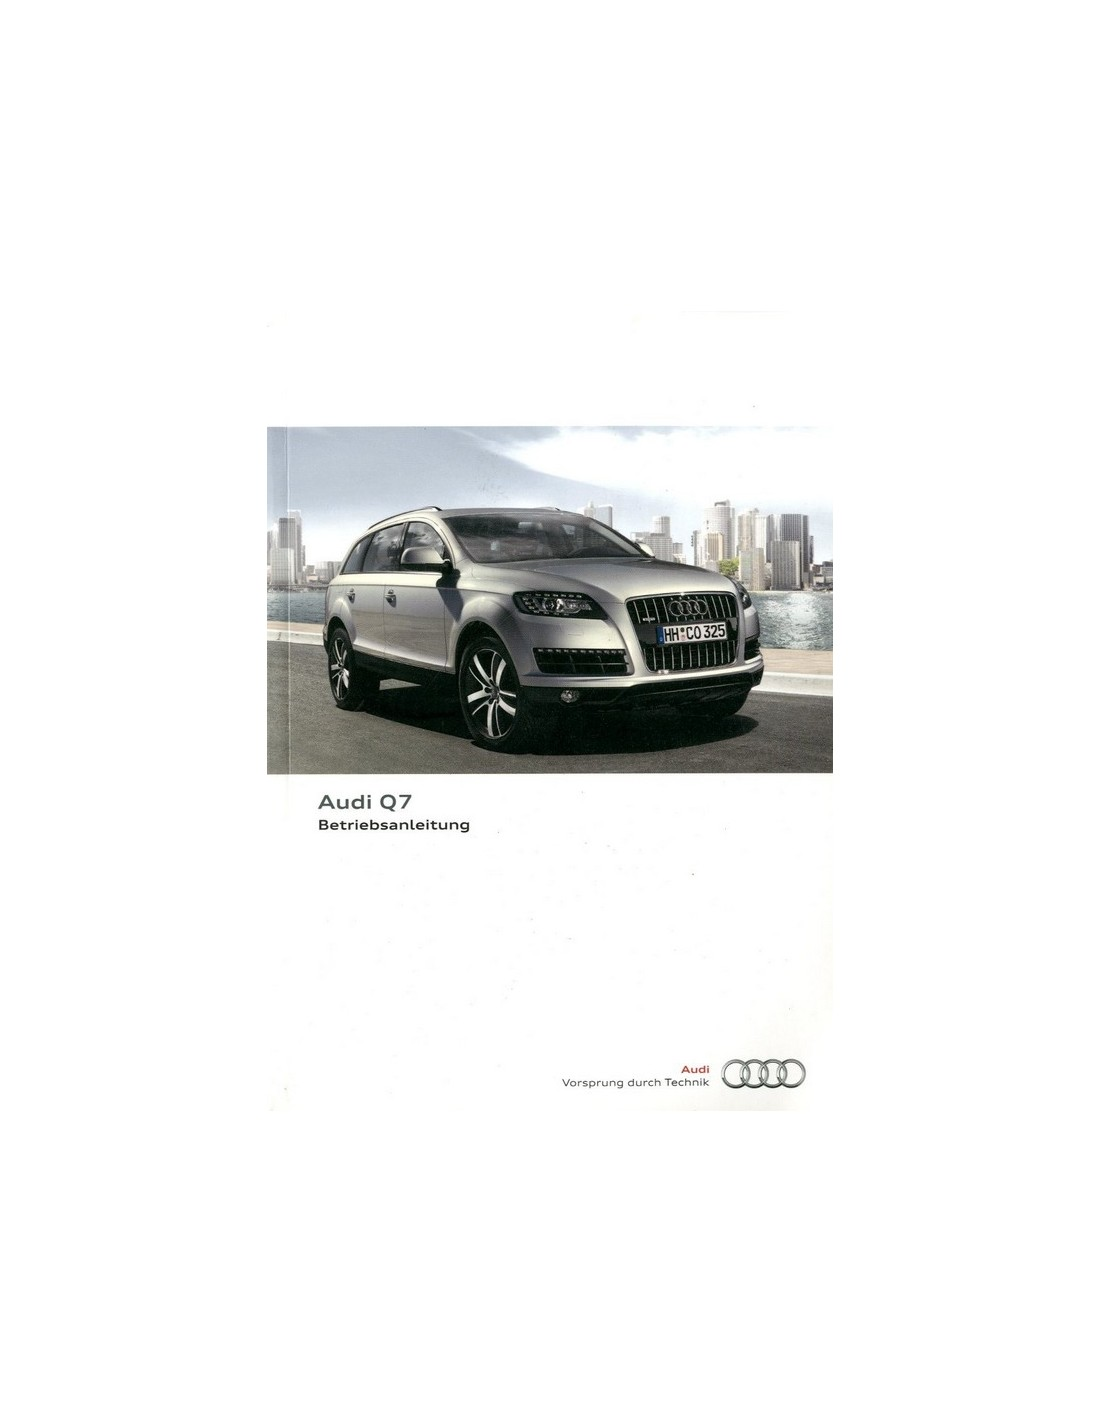 2010 audi q7 owner s manual german rh autolit eu 2010 audi a4 owners manual pdf download 2010 audi a4 owners manual pdf download